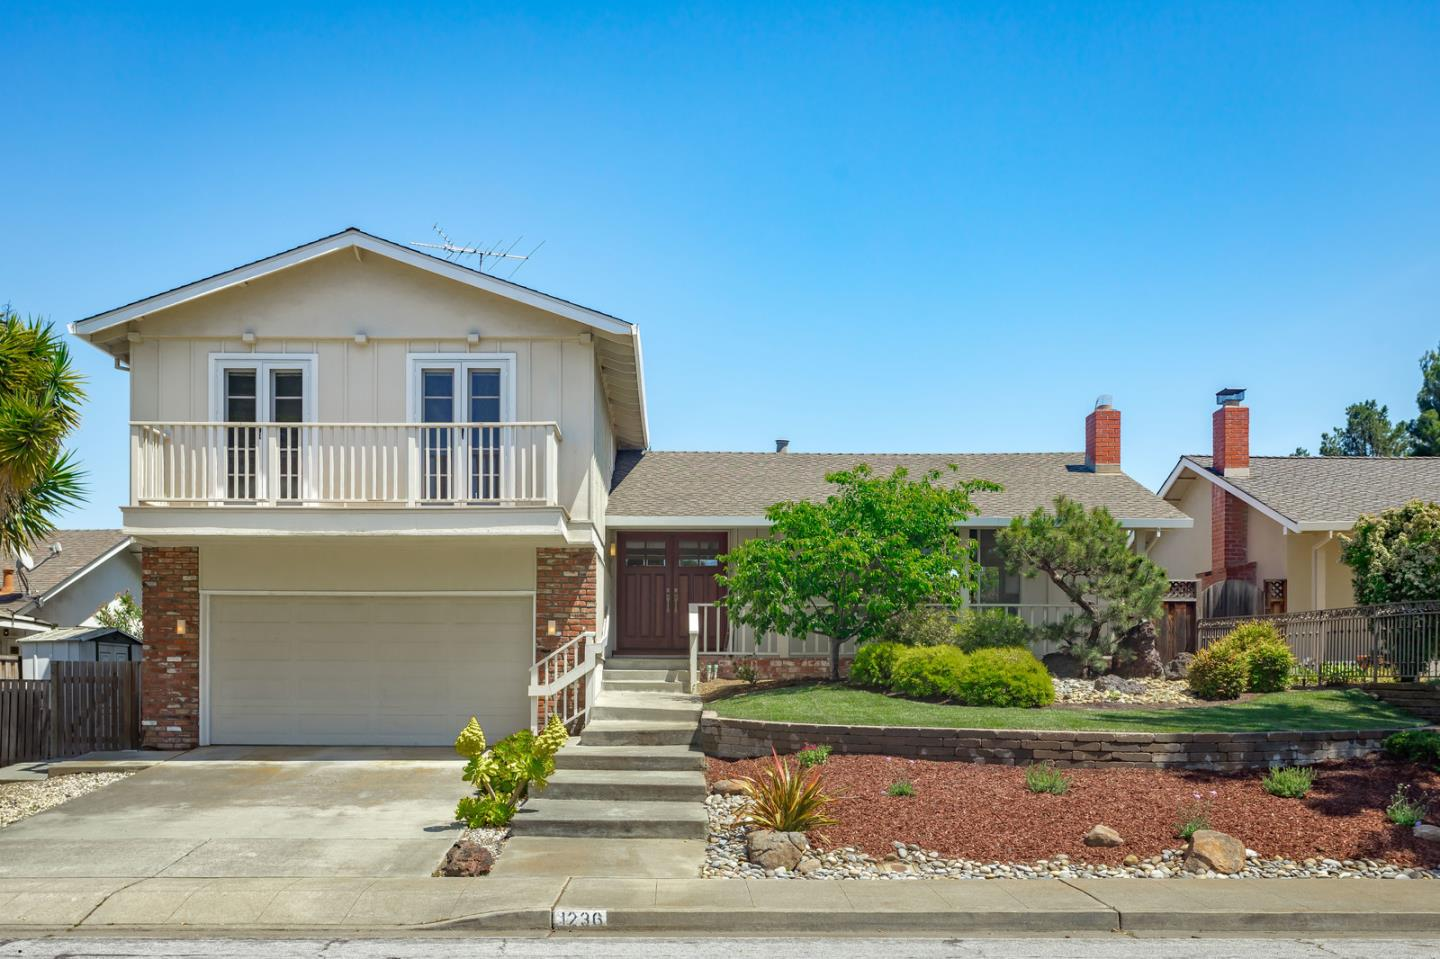 Detail Gallery Image 1 of 1 For 1236 Van Dyck Dr, Sunnyvale, CA 94087 - 4 Beds | 2/1 Baths